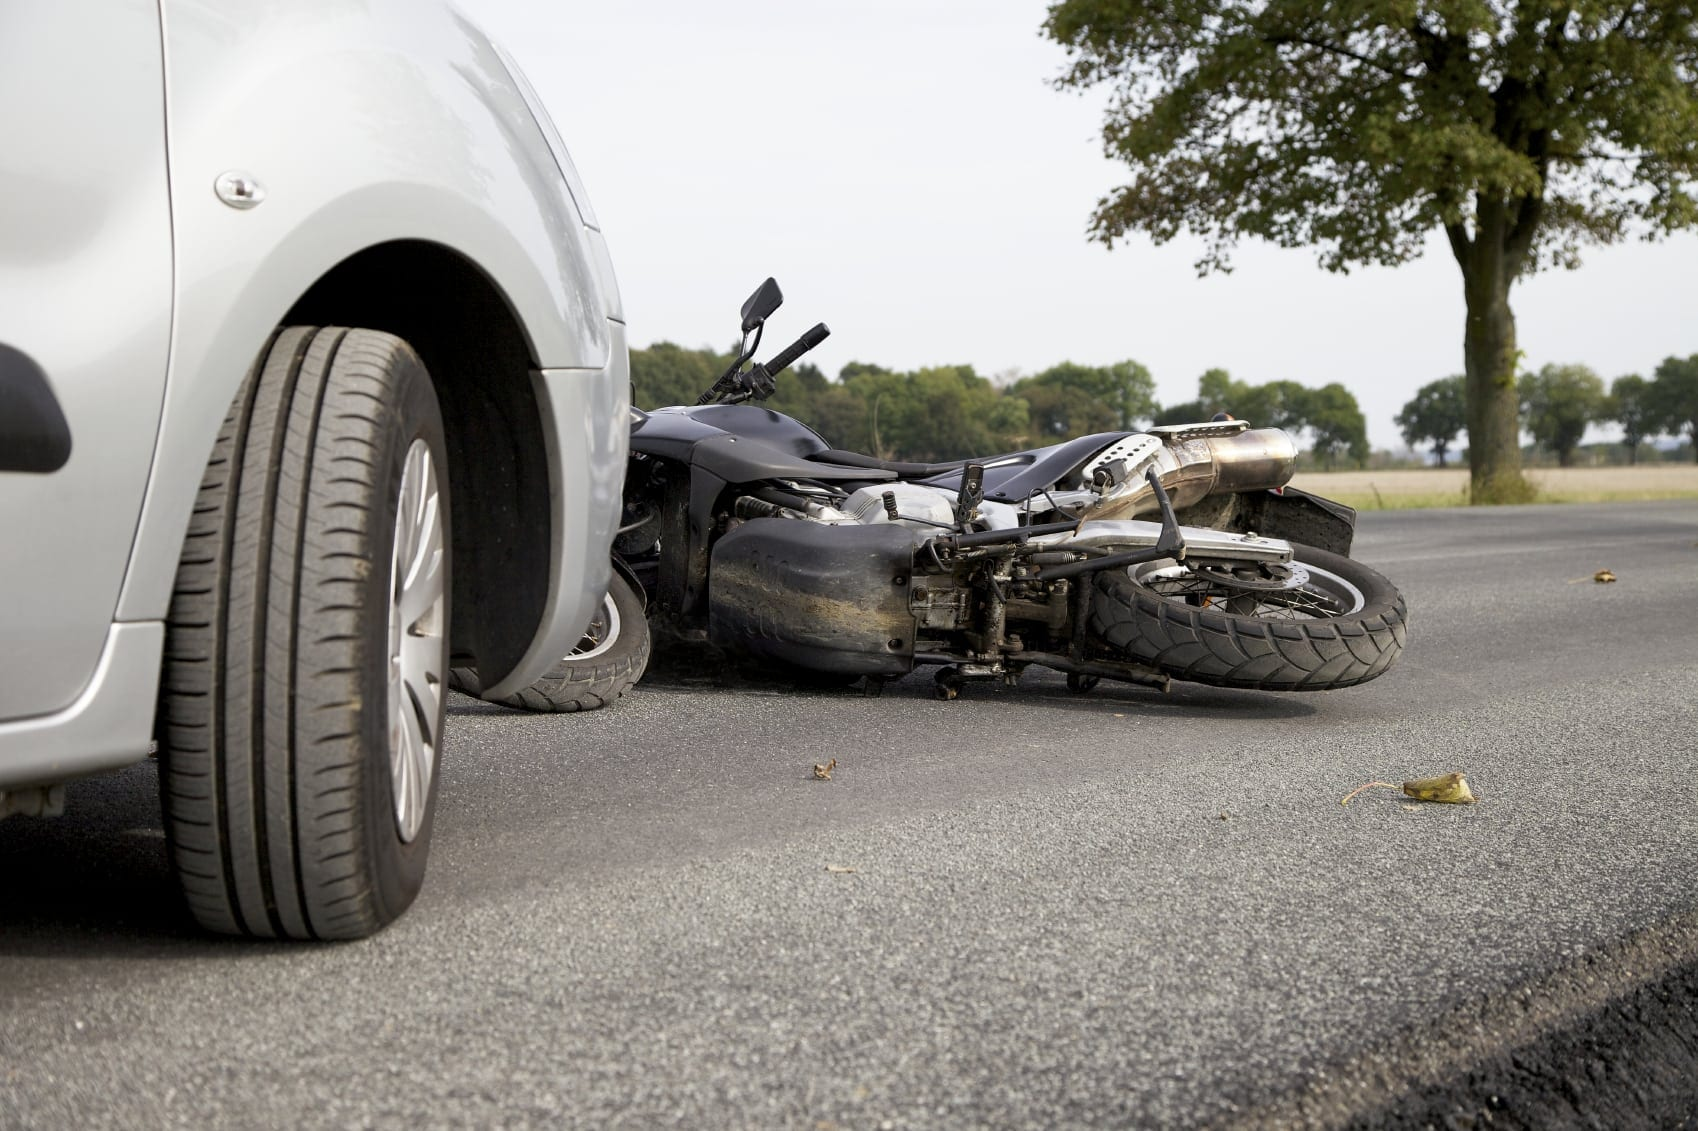 Motorcycle Accident With Larger Vehicle Stock Photo